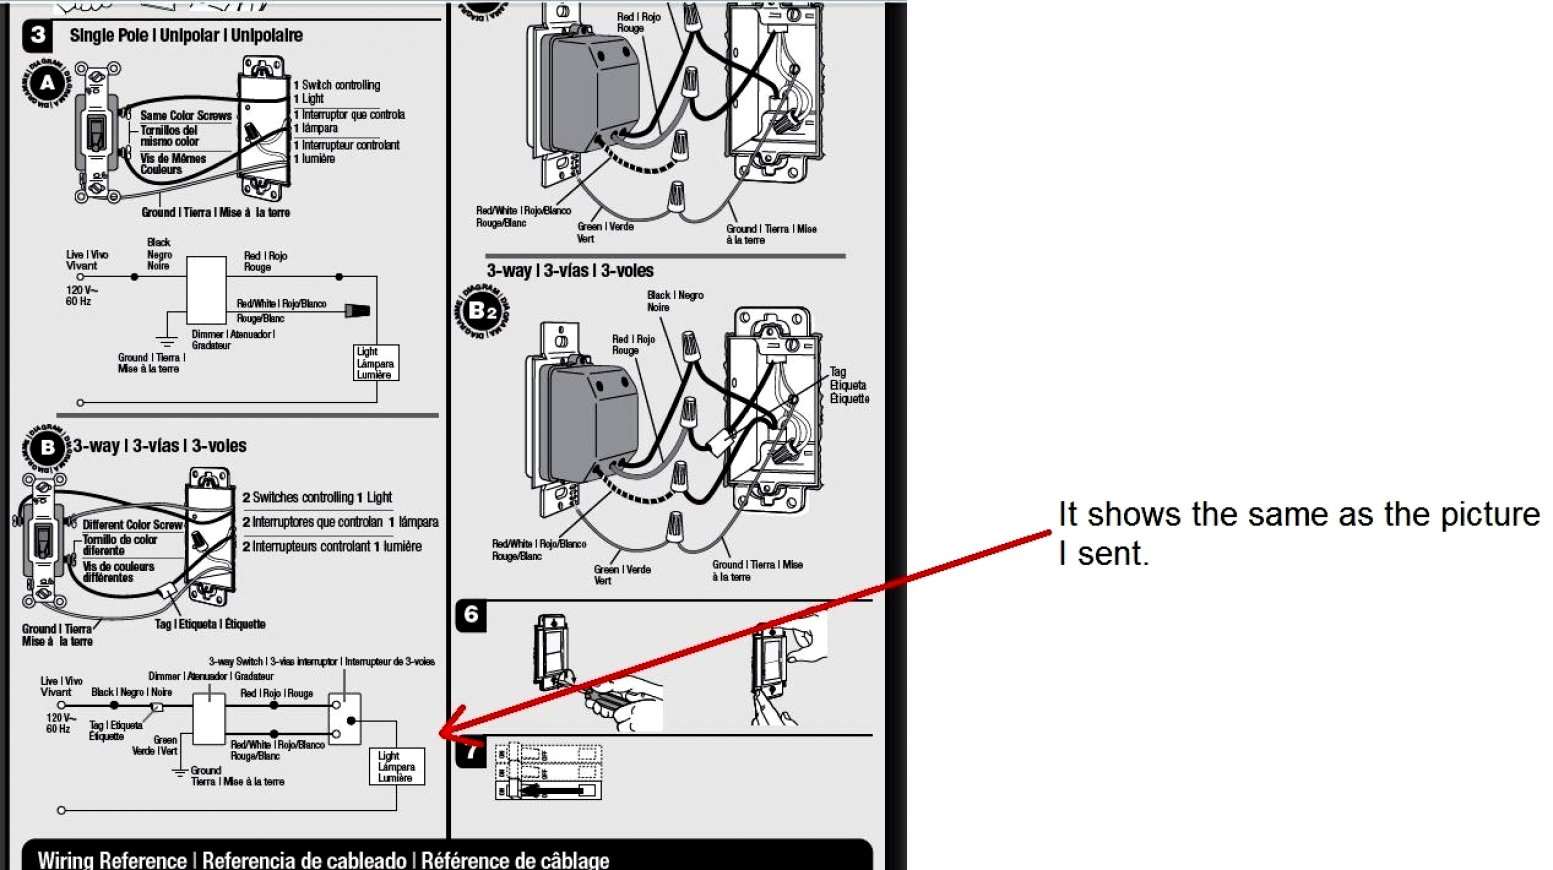 S2L Lutron Dimmer Switch Wiring Diagram | Manual E-Books - Lutron 3 Way Dimmer Switch Wiring Diagram